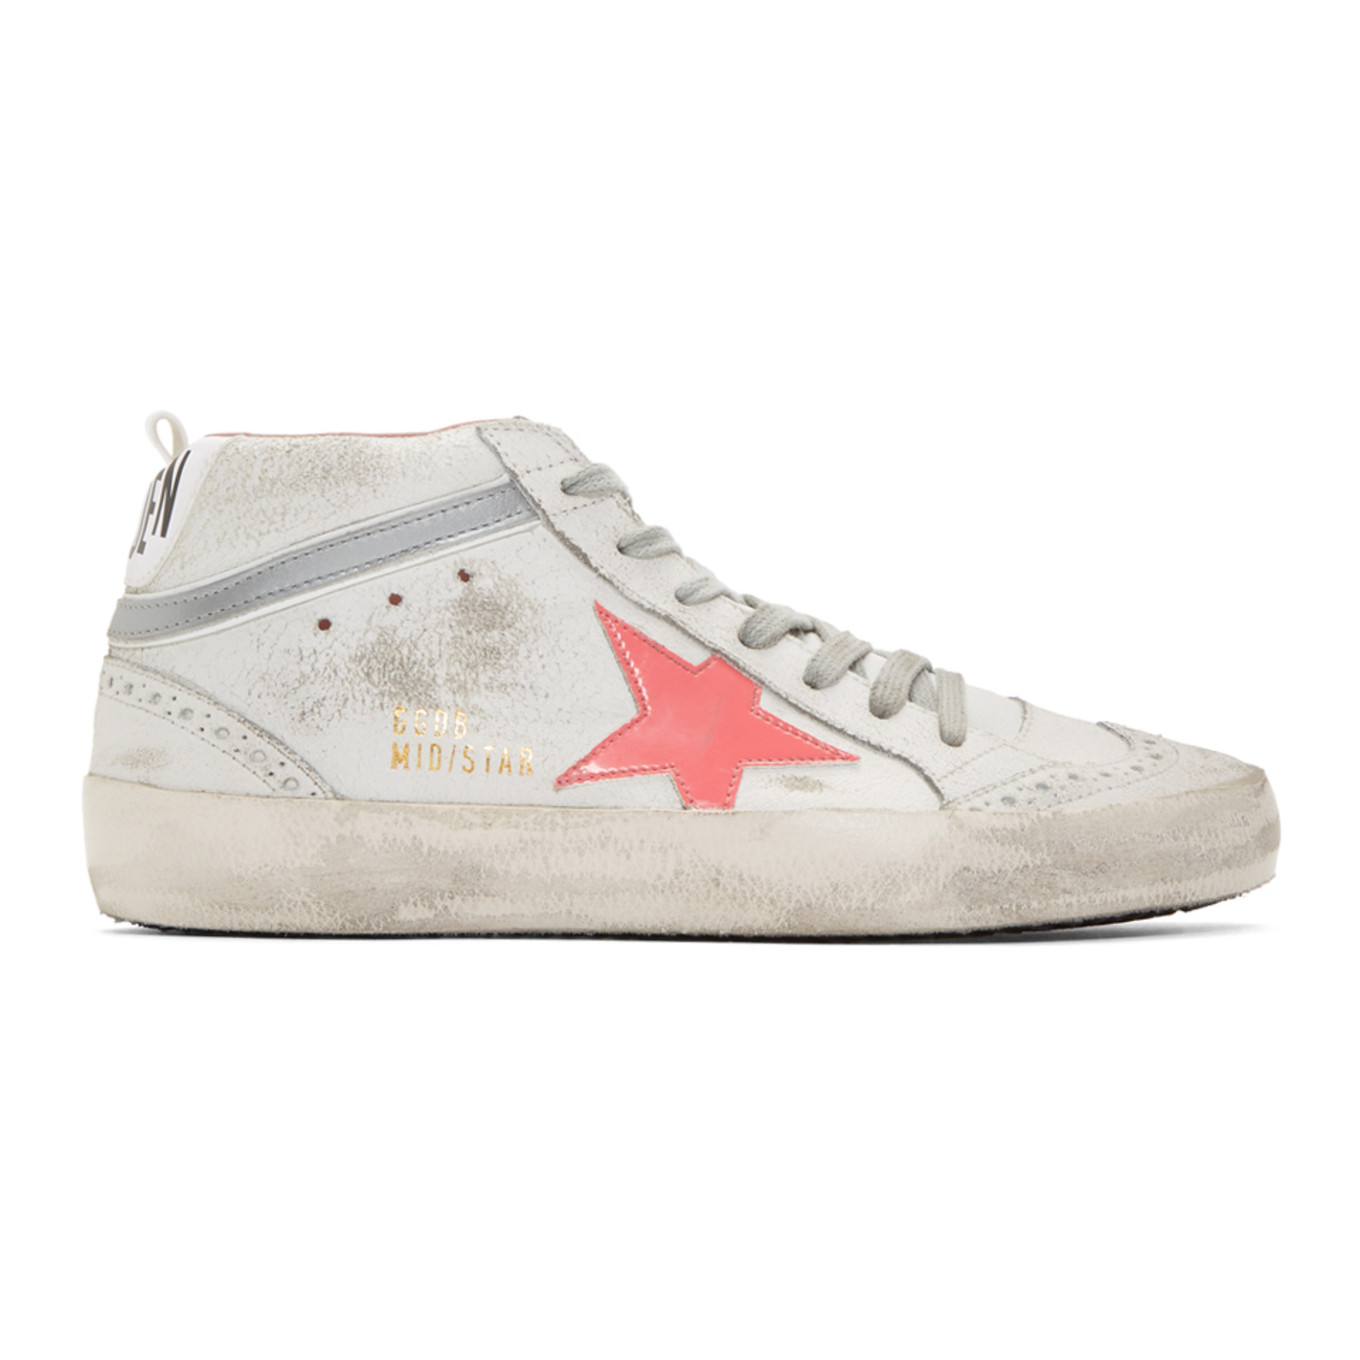 White & Pink Mid Star Sneakers by Golden Goose